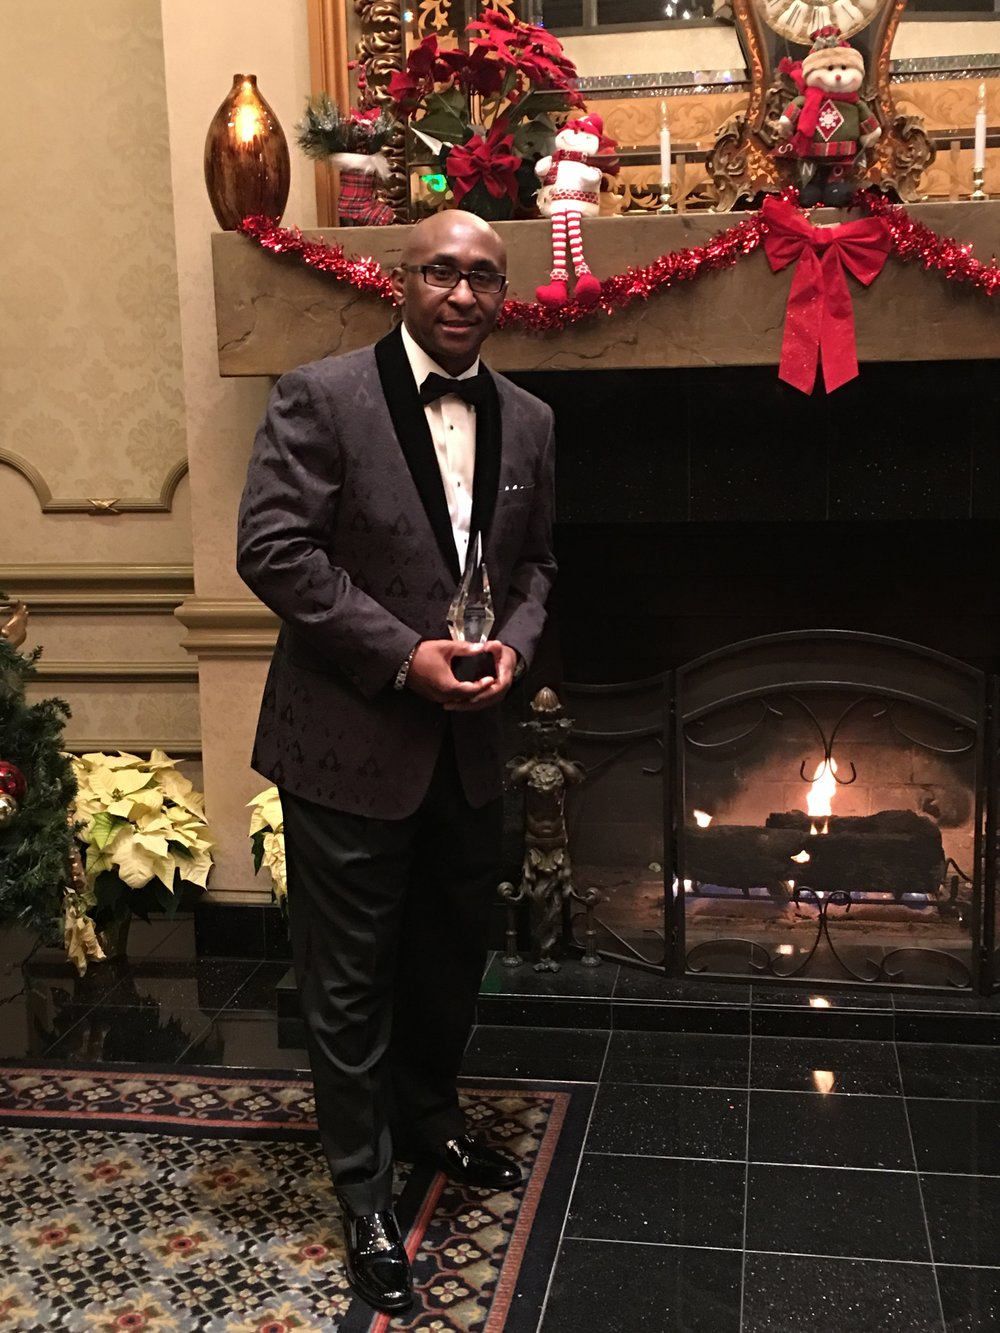 Mr. Lancaster & UEBSC was awarded the Excellence Award for the Most Outstanding Sponsor within Blacks in Government (BIG) - December, 2016